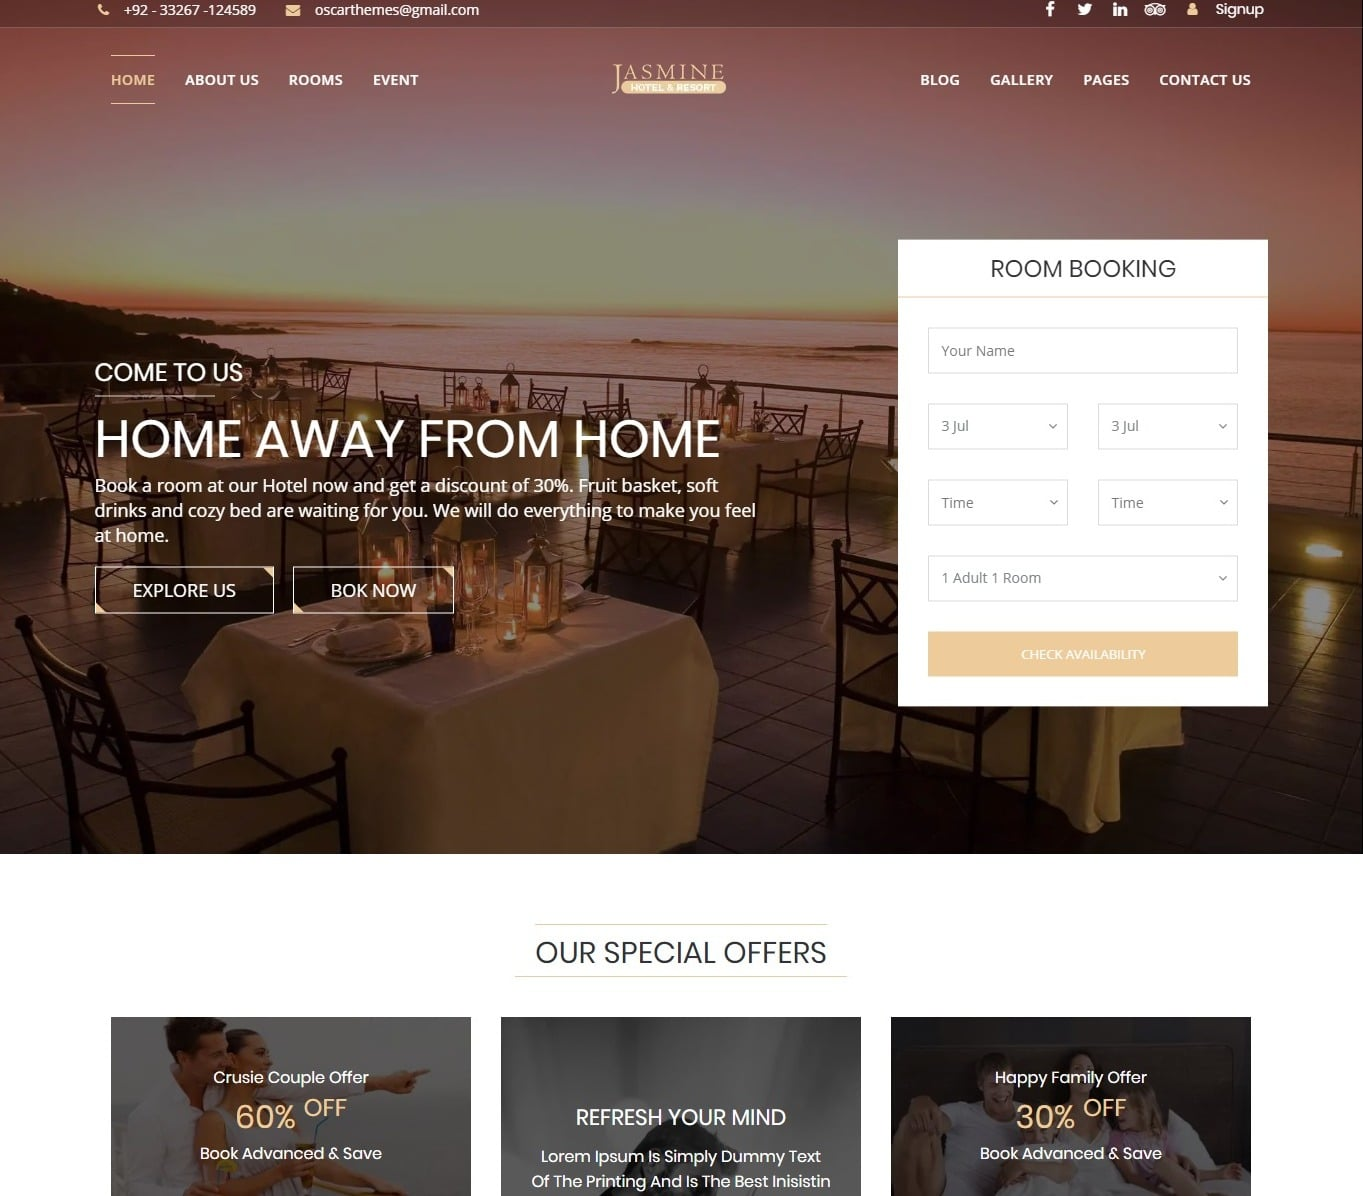 jasmine-hotel-website-template